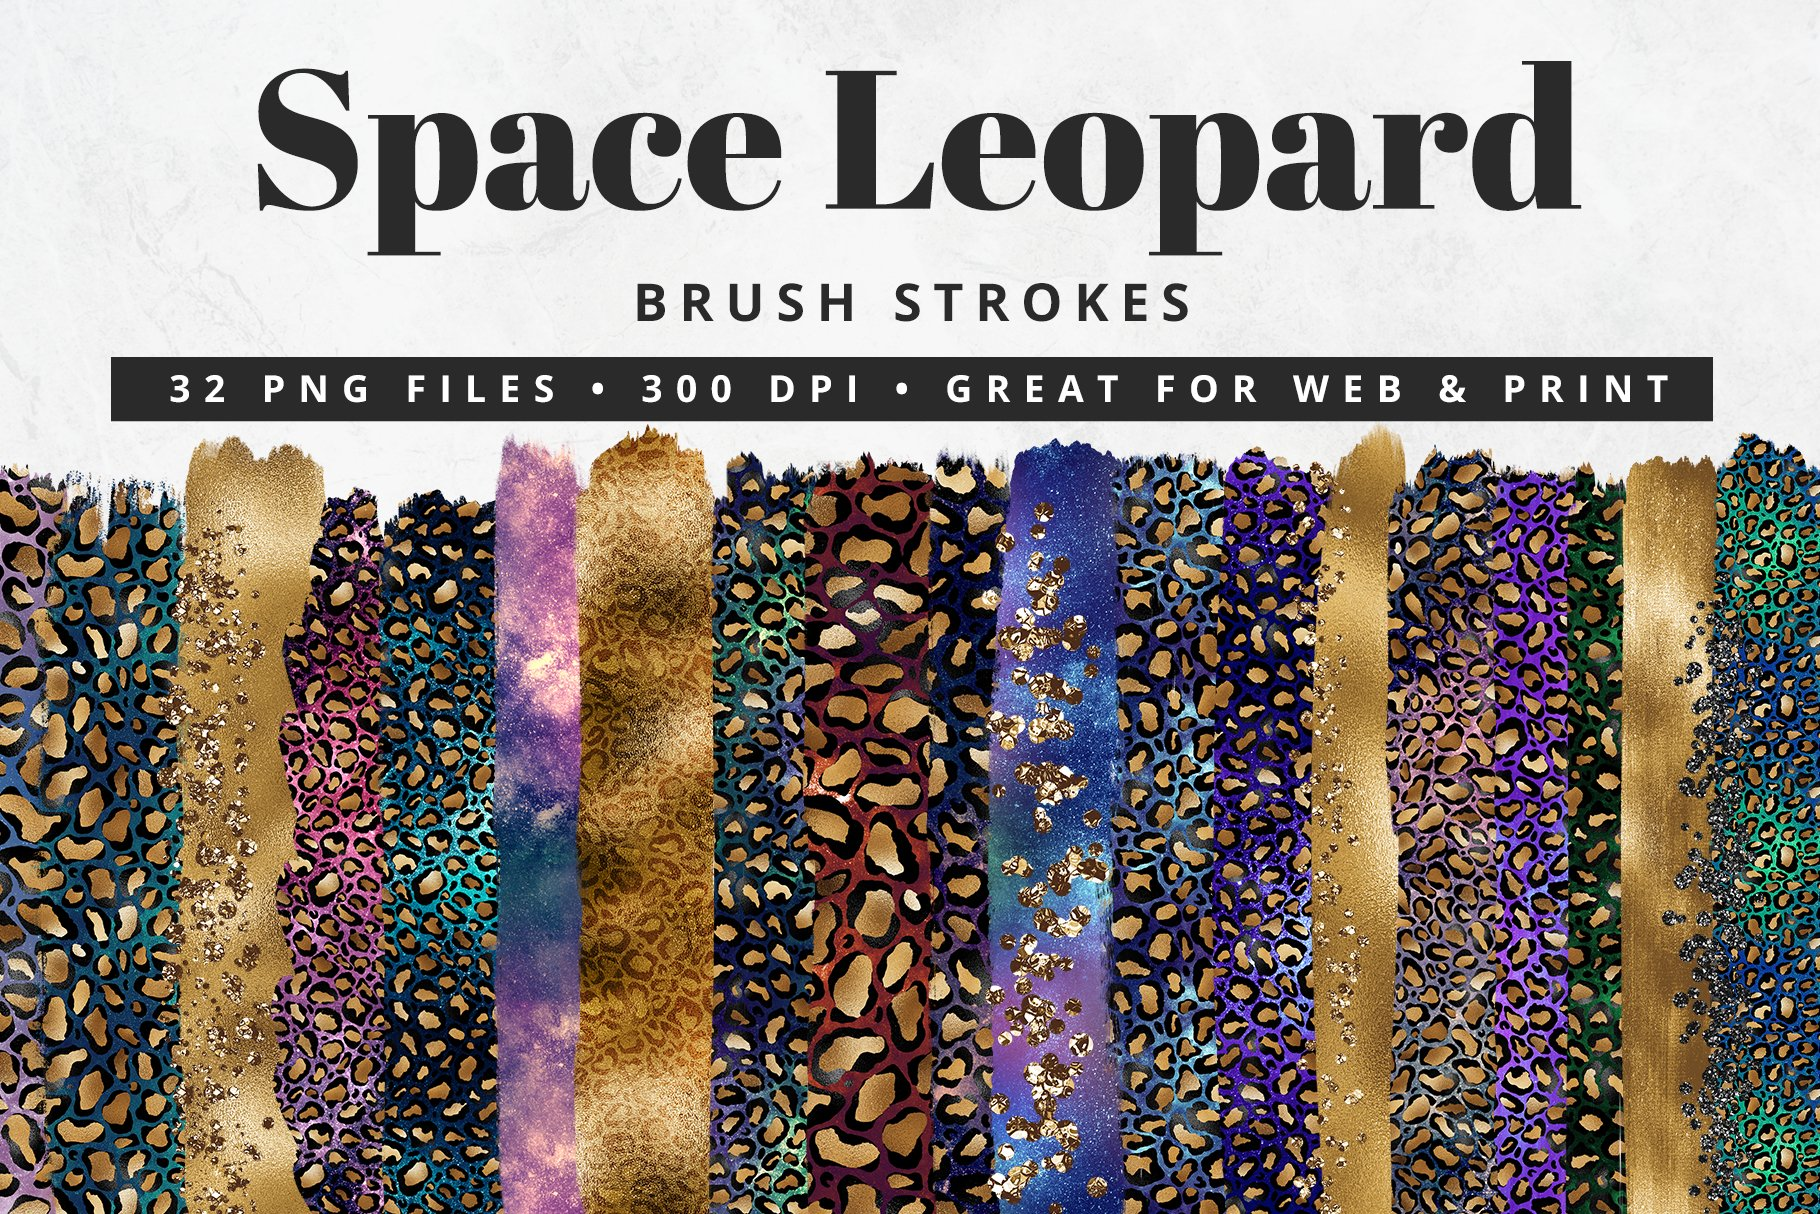 Space Leopard Brush Strokes example image 1